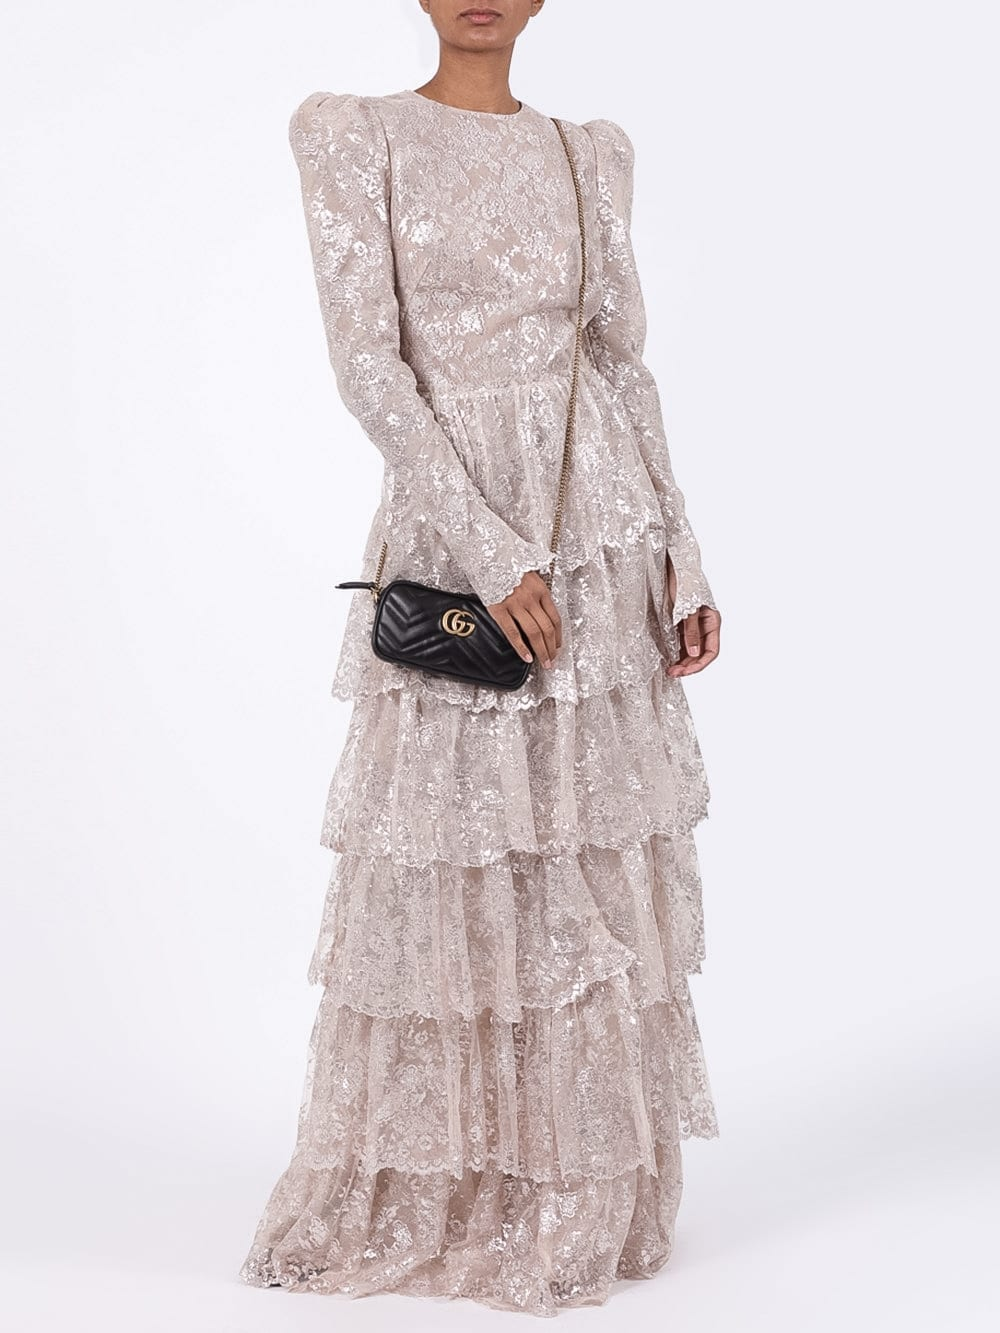 THE VAMPIRE'S WIFE Tiered Floral Lace Gown